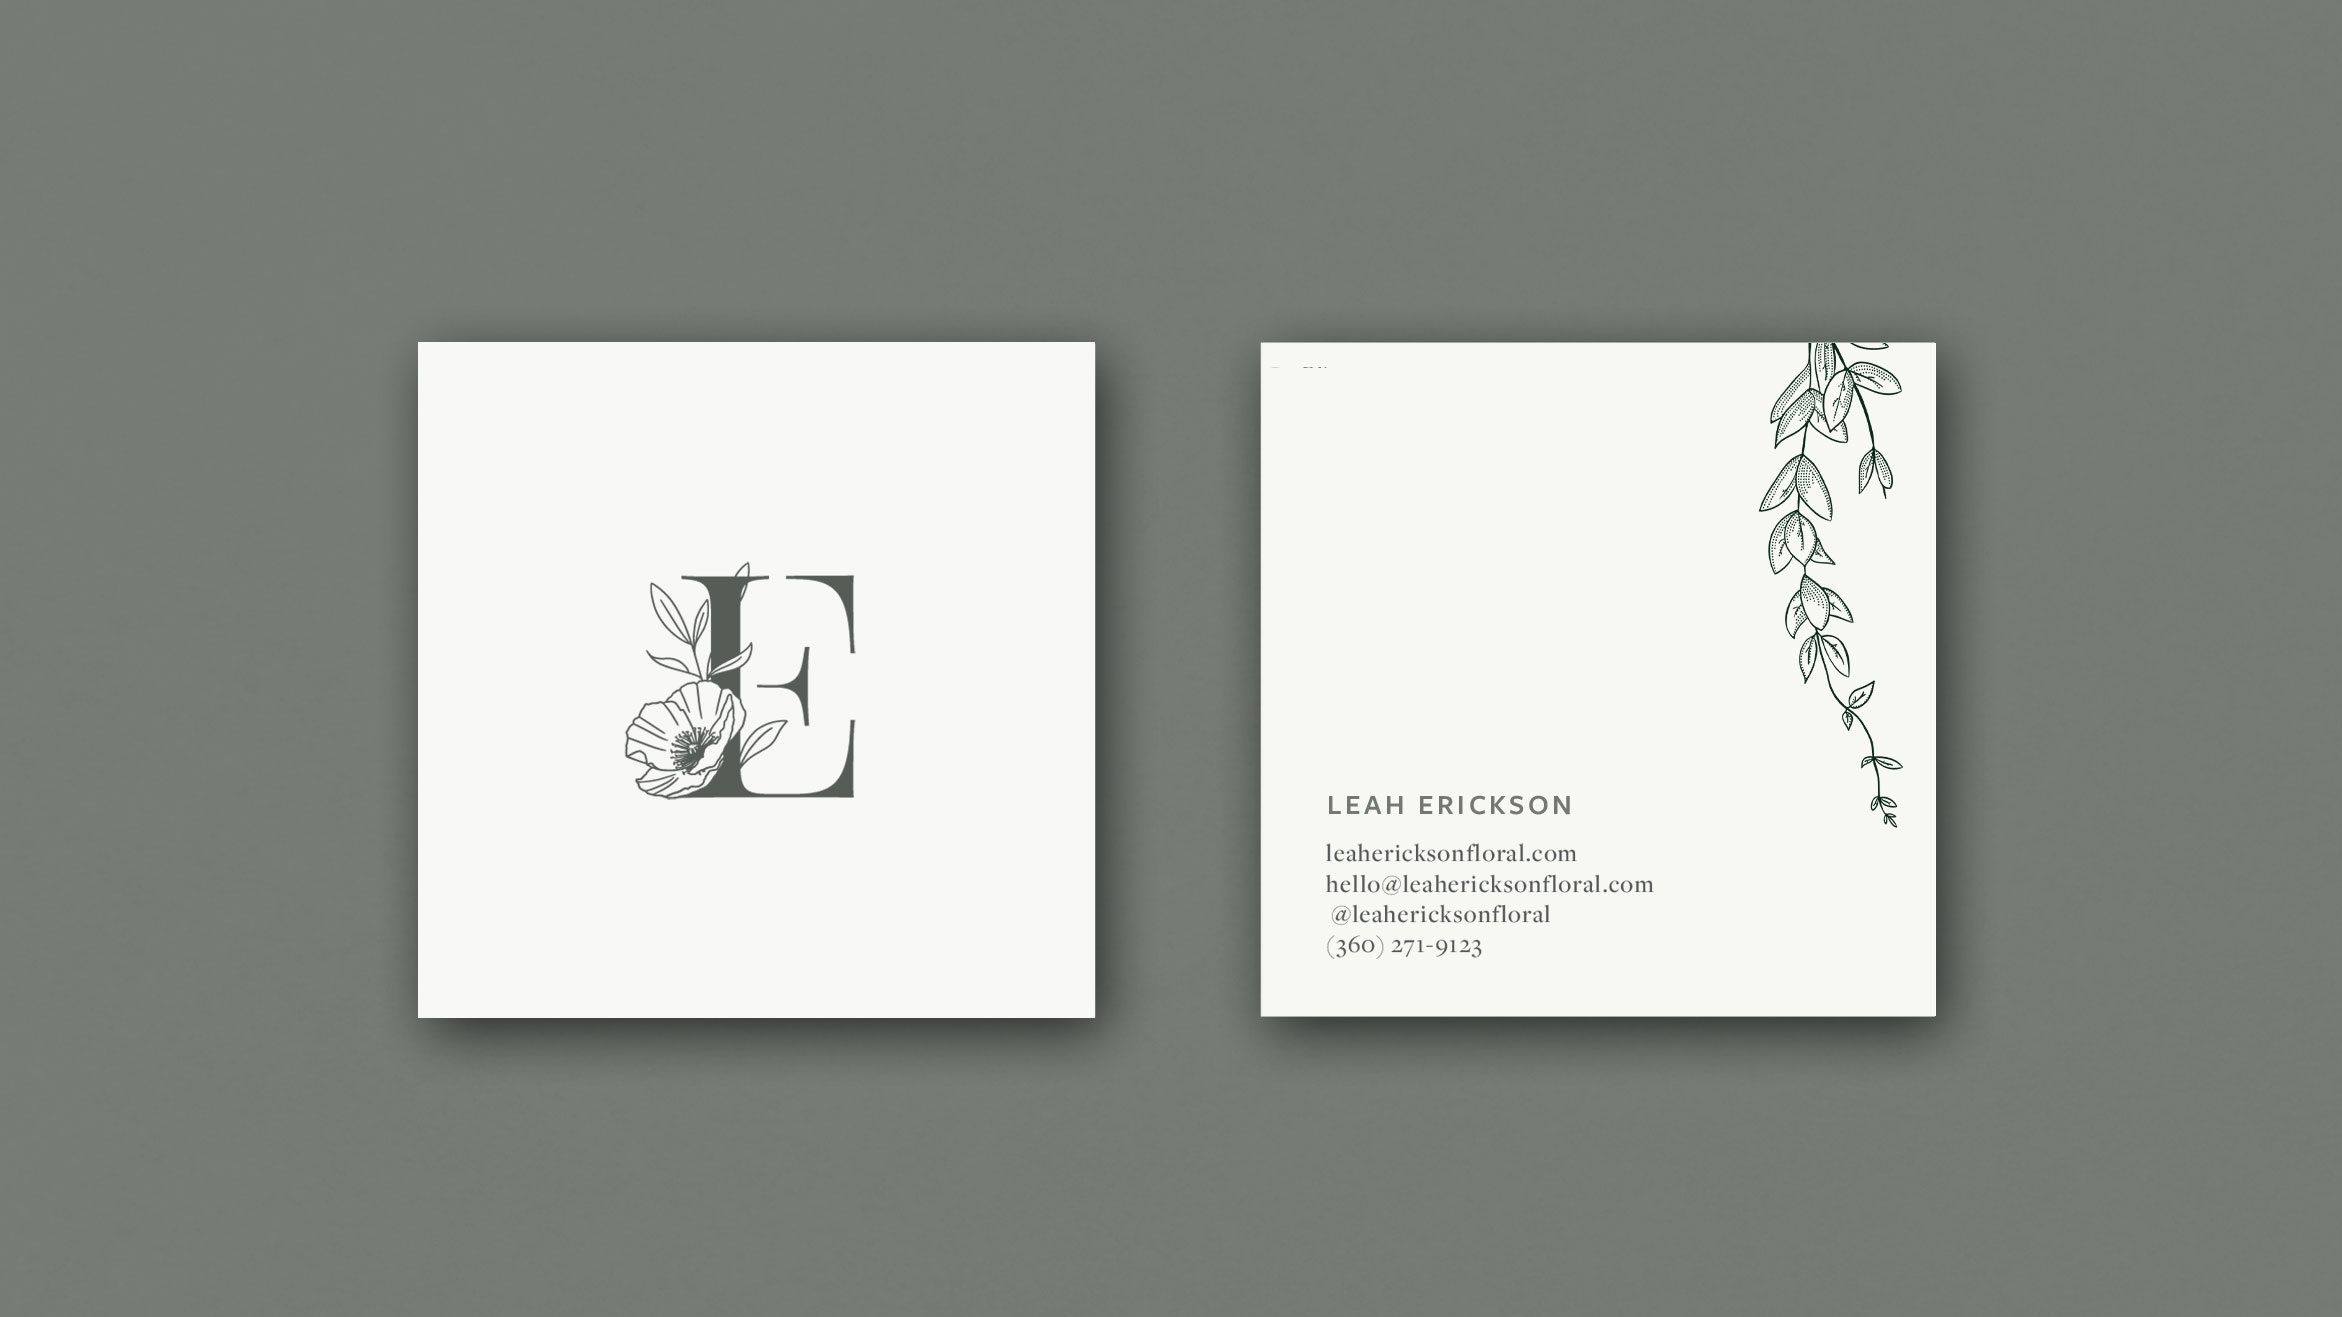 LEAH ERICKSON FLORAL - PROJECTBrand Strategy, Logo Design, Web DevelopmentComing Soon!